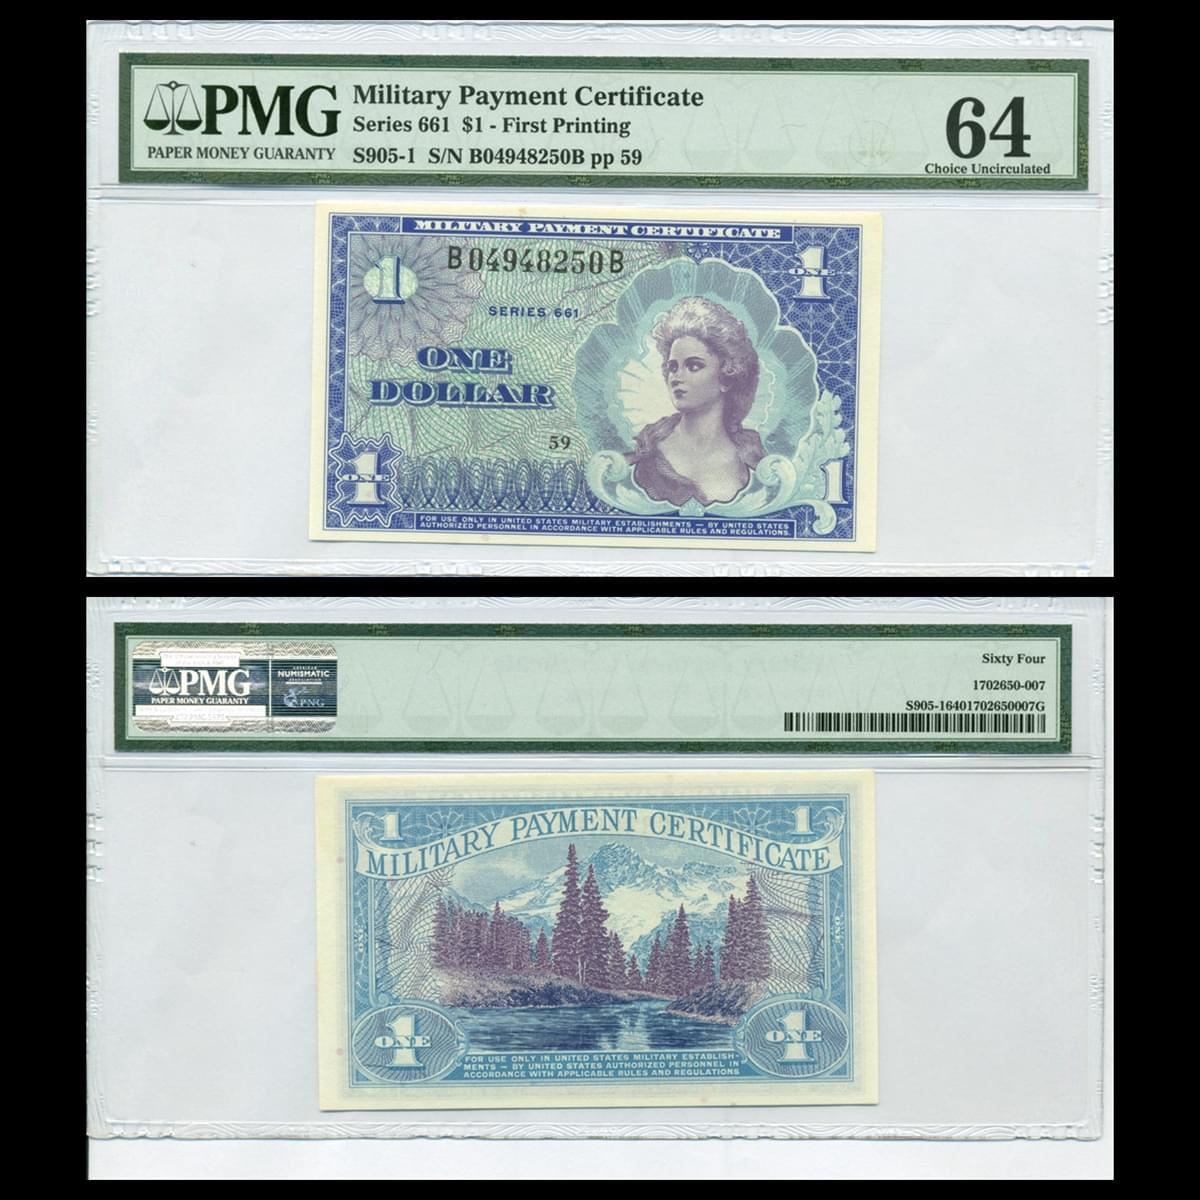 1 dollar MPC series 661